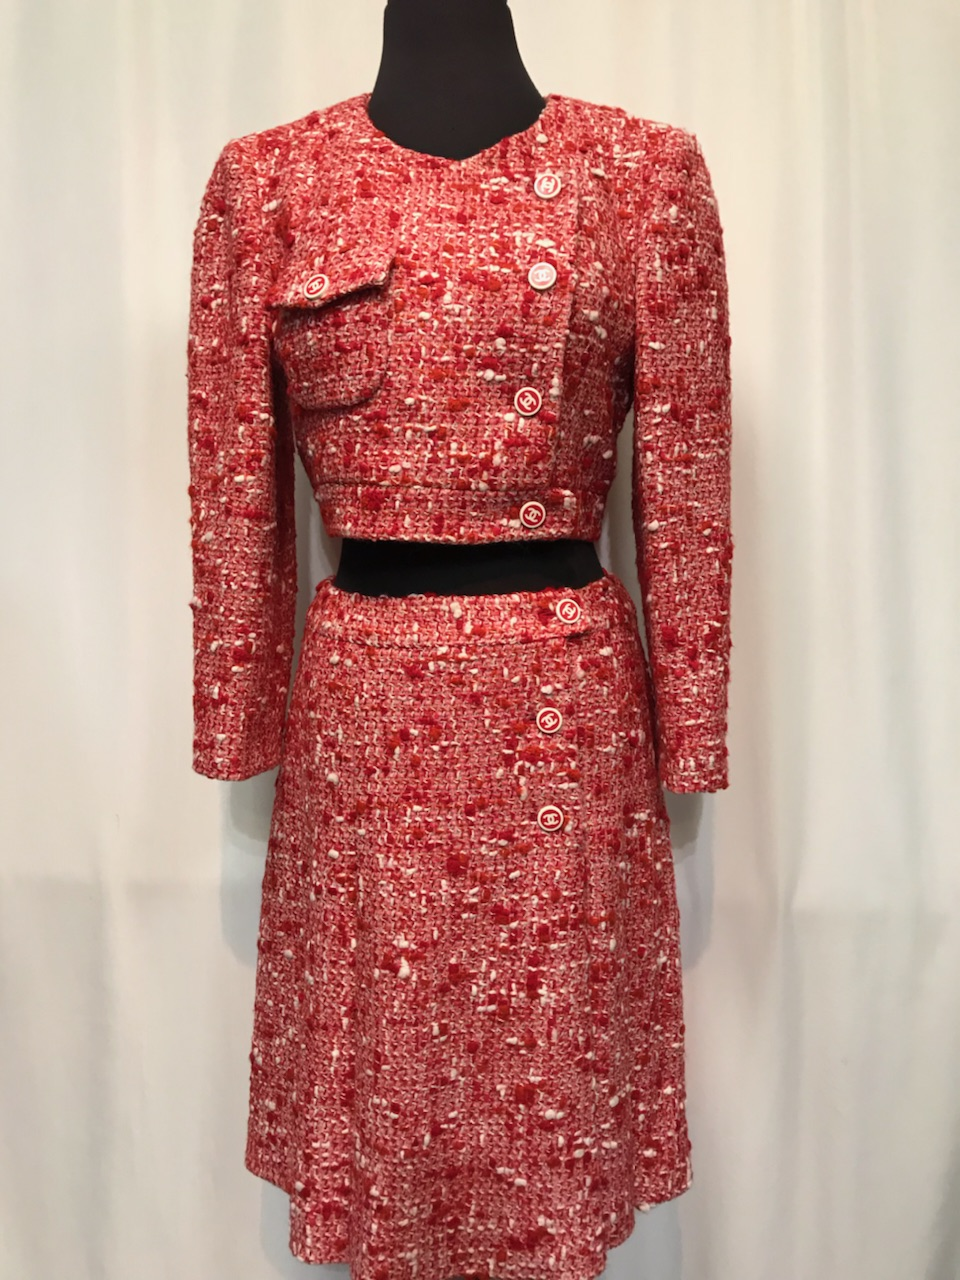 CHANEL Dresses, Gowns, Skirts Price: $1199.99